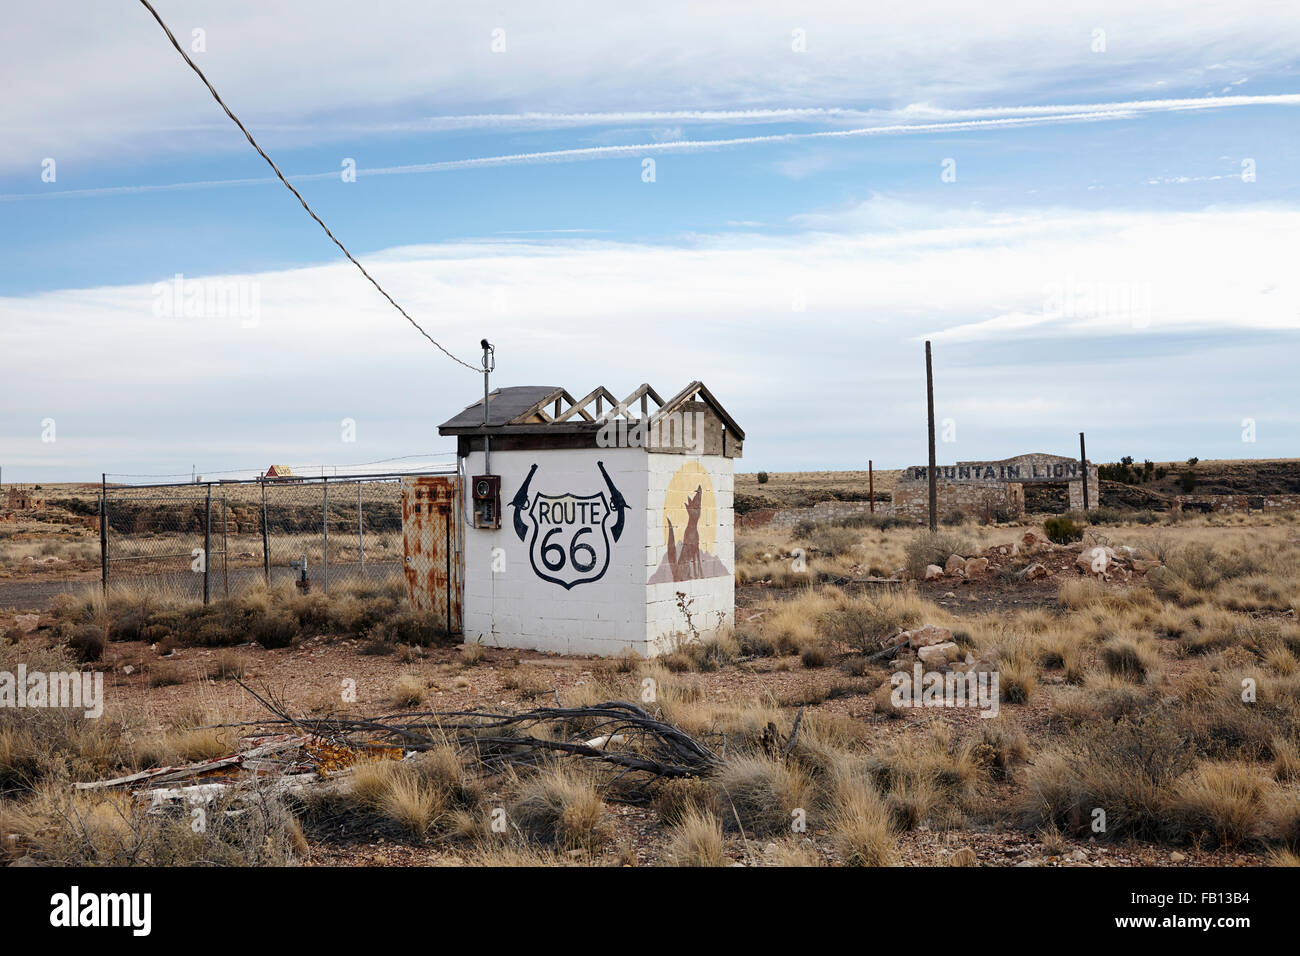 Abandoned built structure in desert - Stock Image